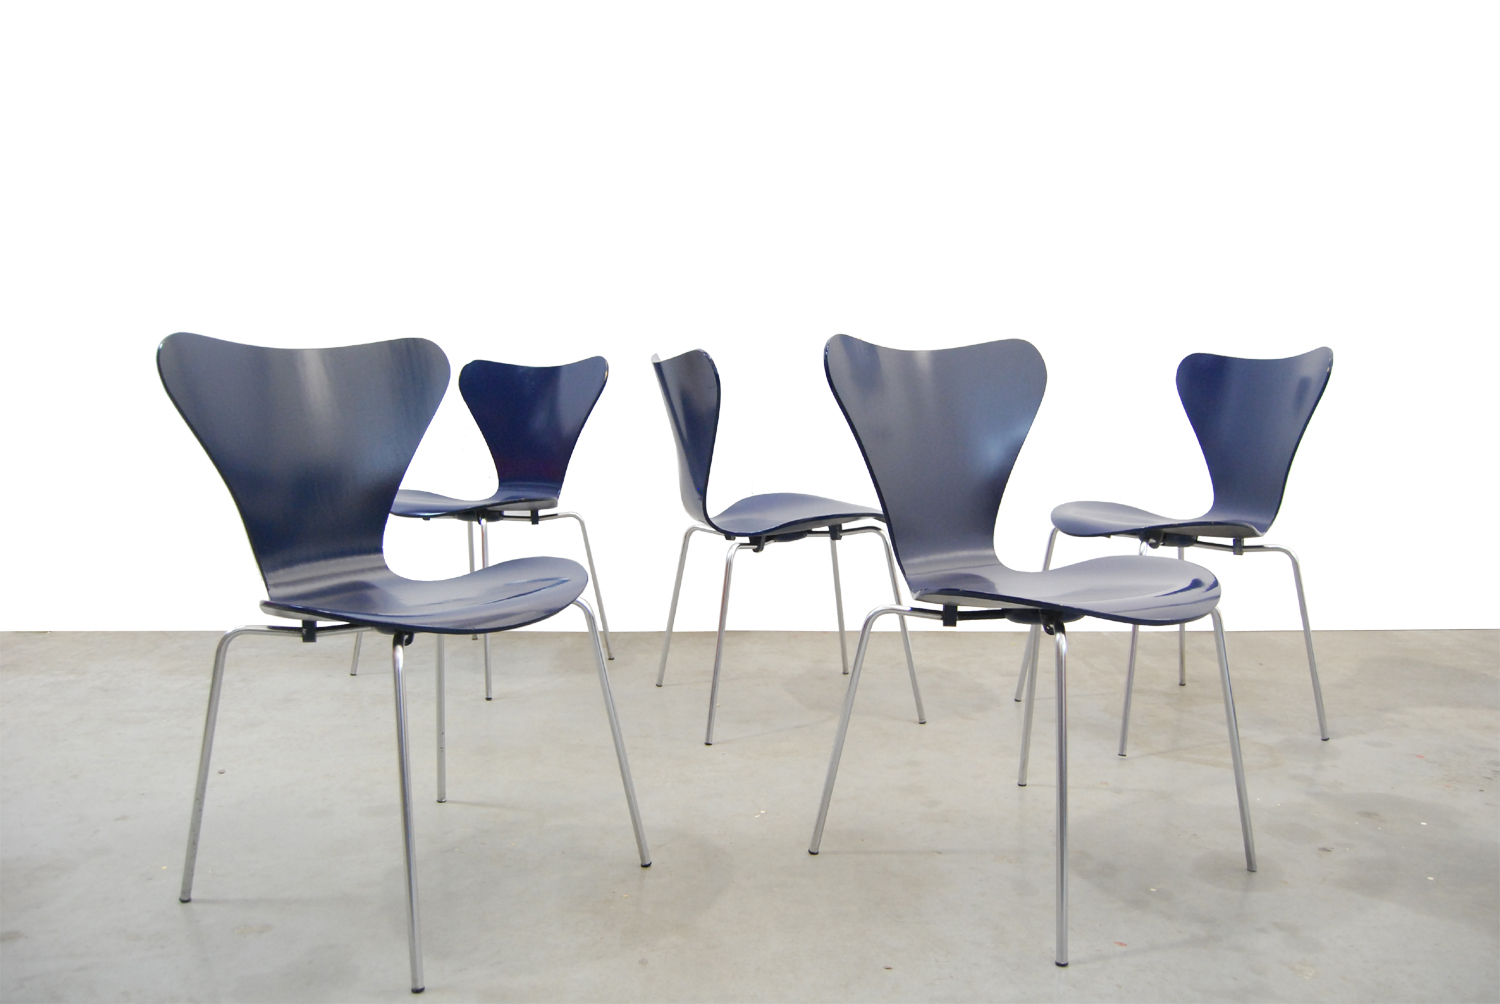 Fritz Hansen Chairs Vintage Butterfly Chairs By Arne Jacobsen For Fritz Hansen 1969 Denmark